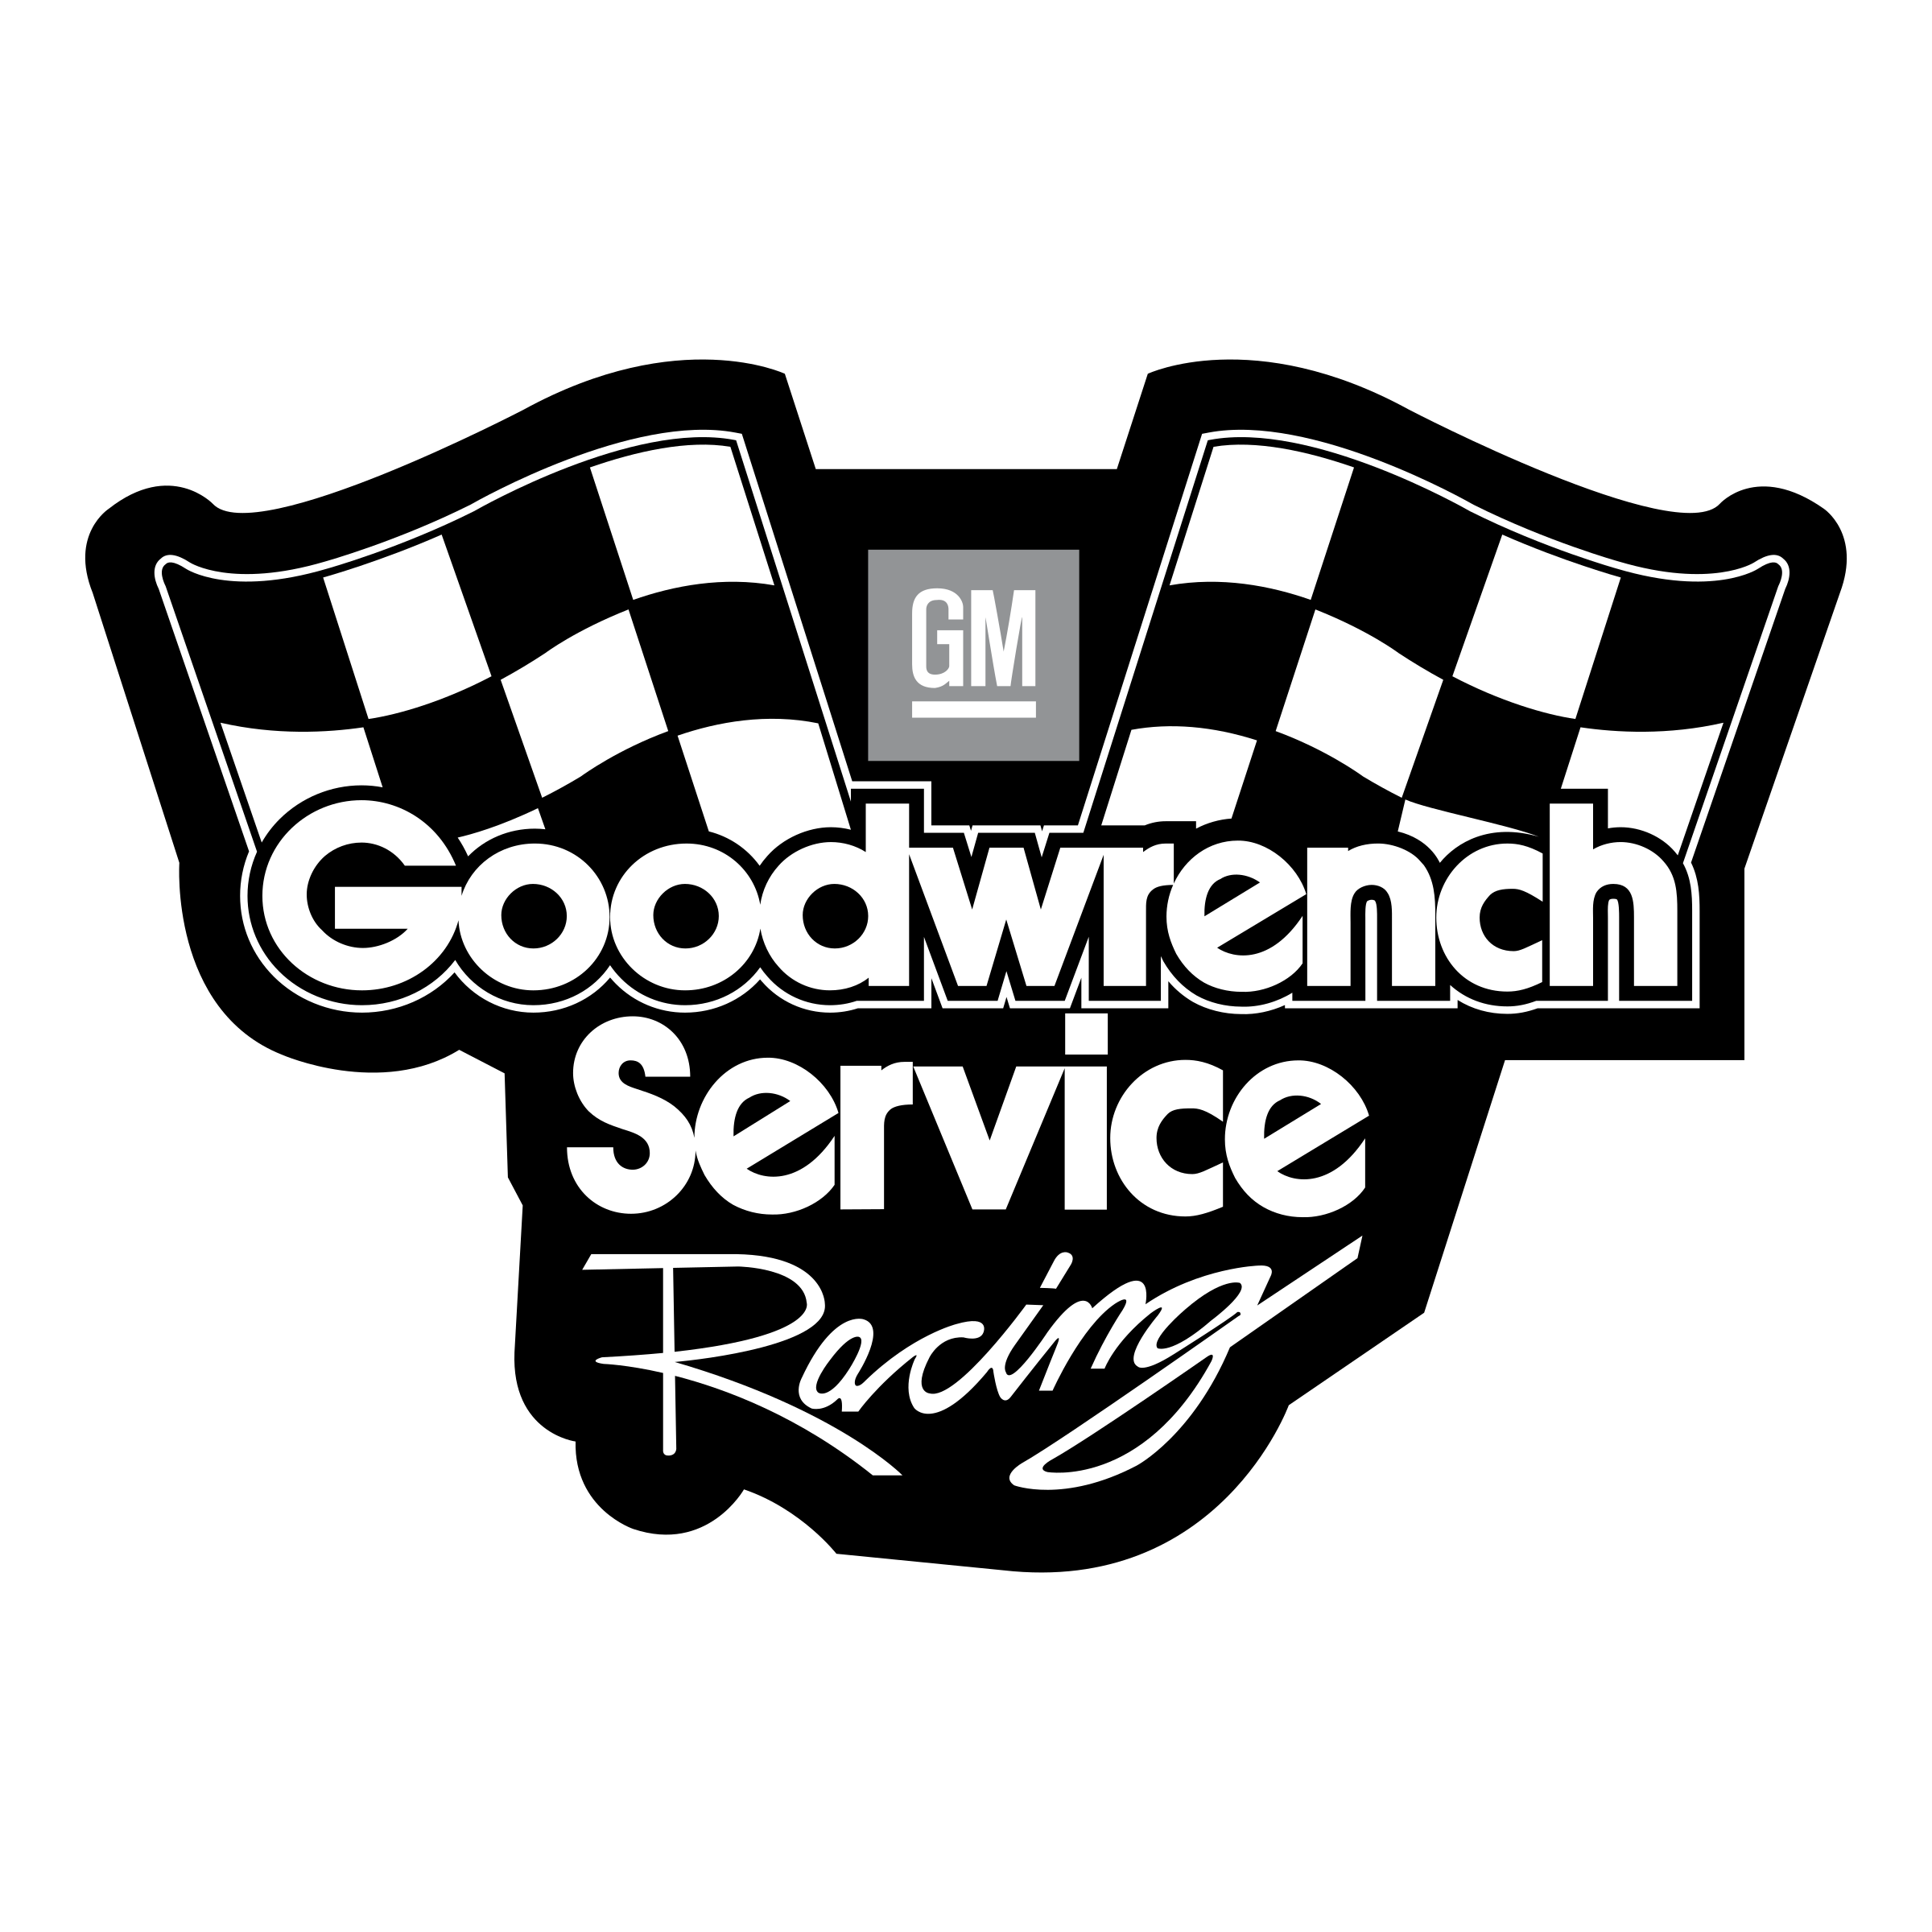 Goodwrench Service Racing Logo PNG Transparent & SVG Vector.